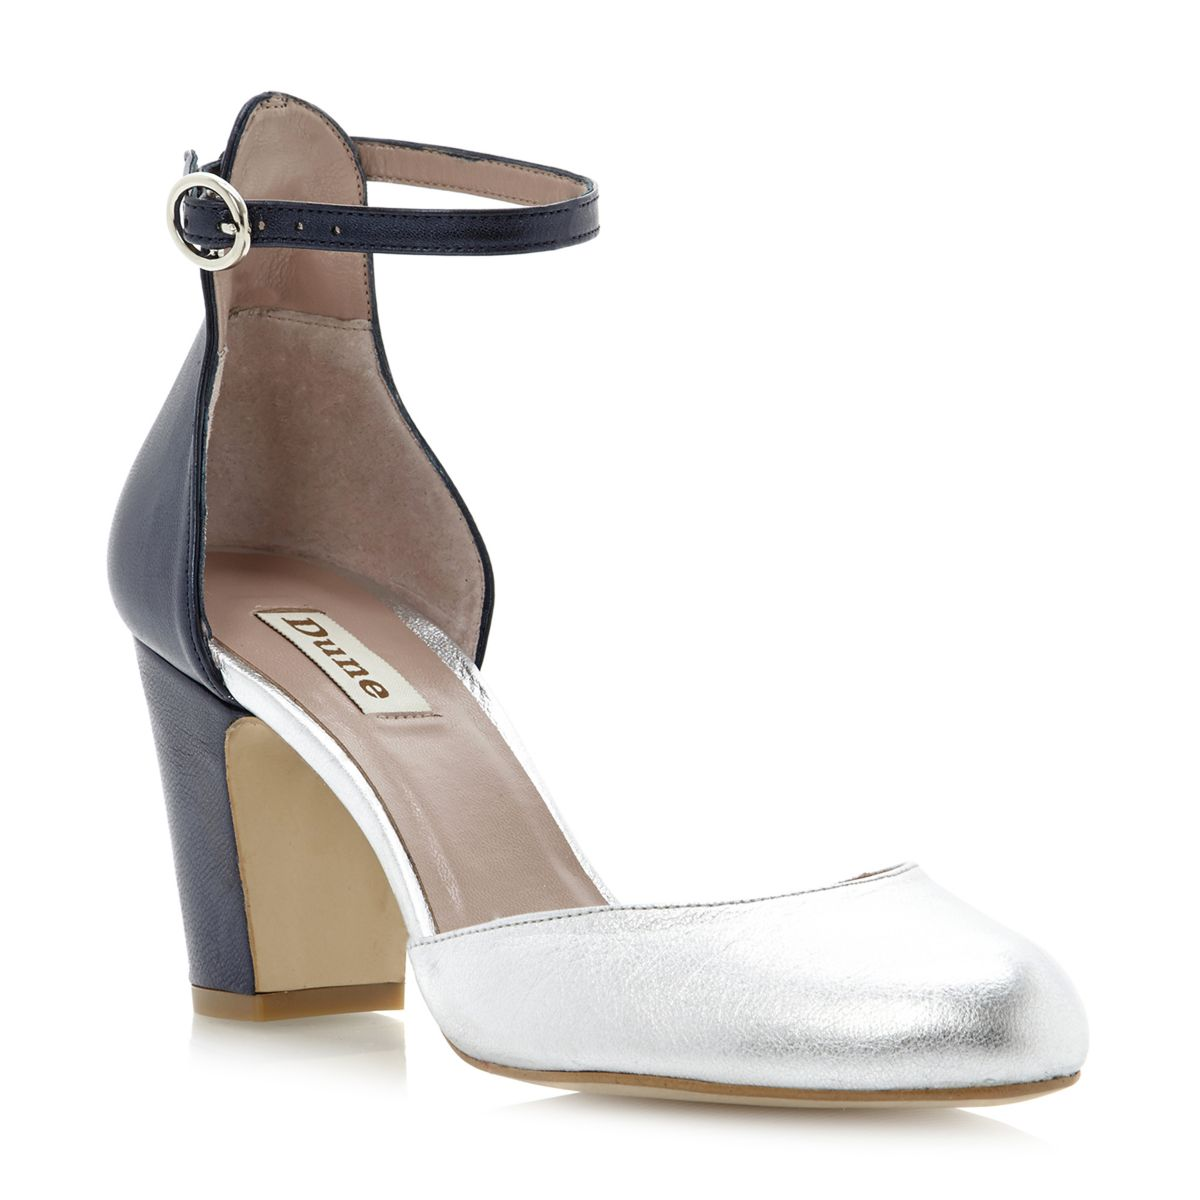 efb9f334108 DUNE LADIES DAWN WOMENS SILVER BLUE BLOCK HEEL ANKLE STRAP COURT .